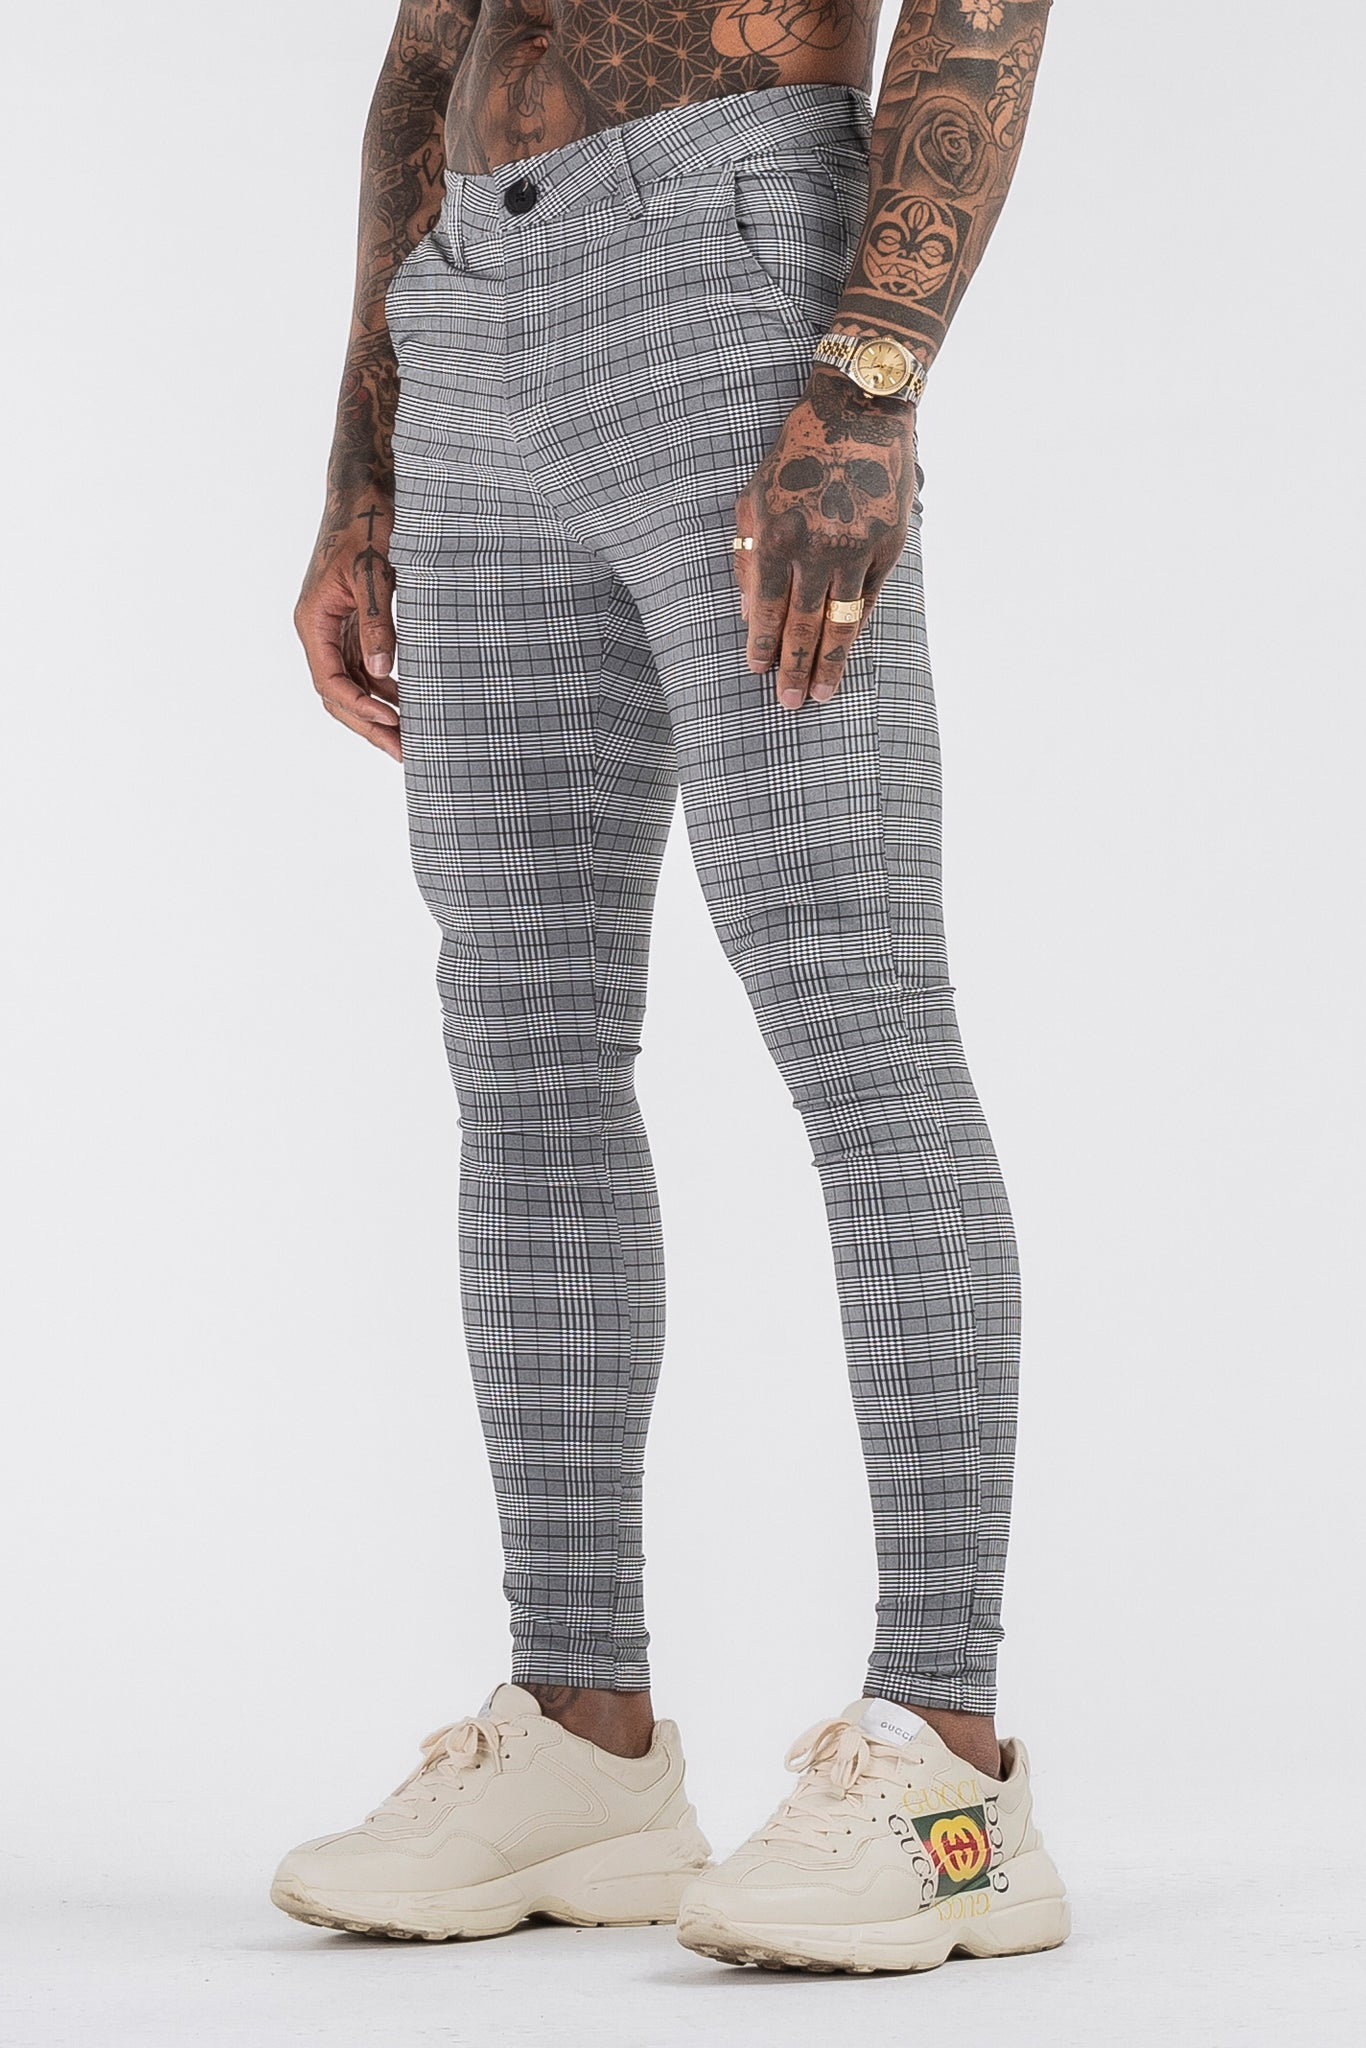 THE LATO TROUSERS - GREY - ICON. AMSTERDAM